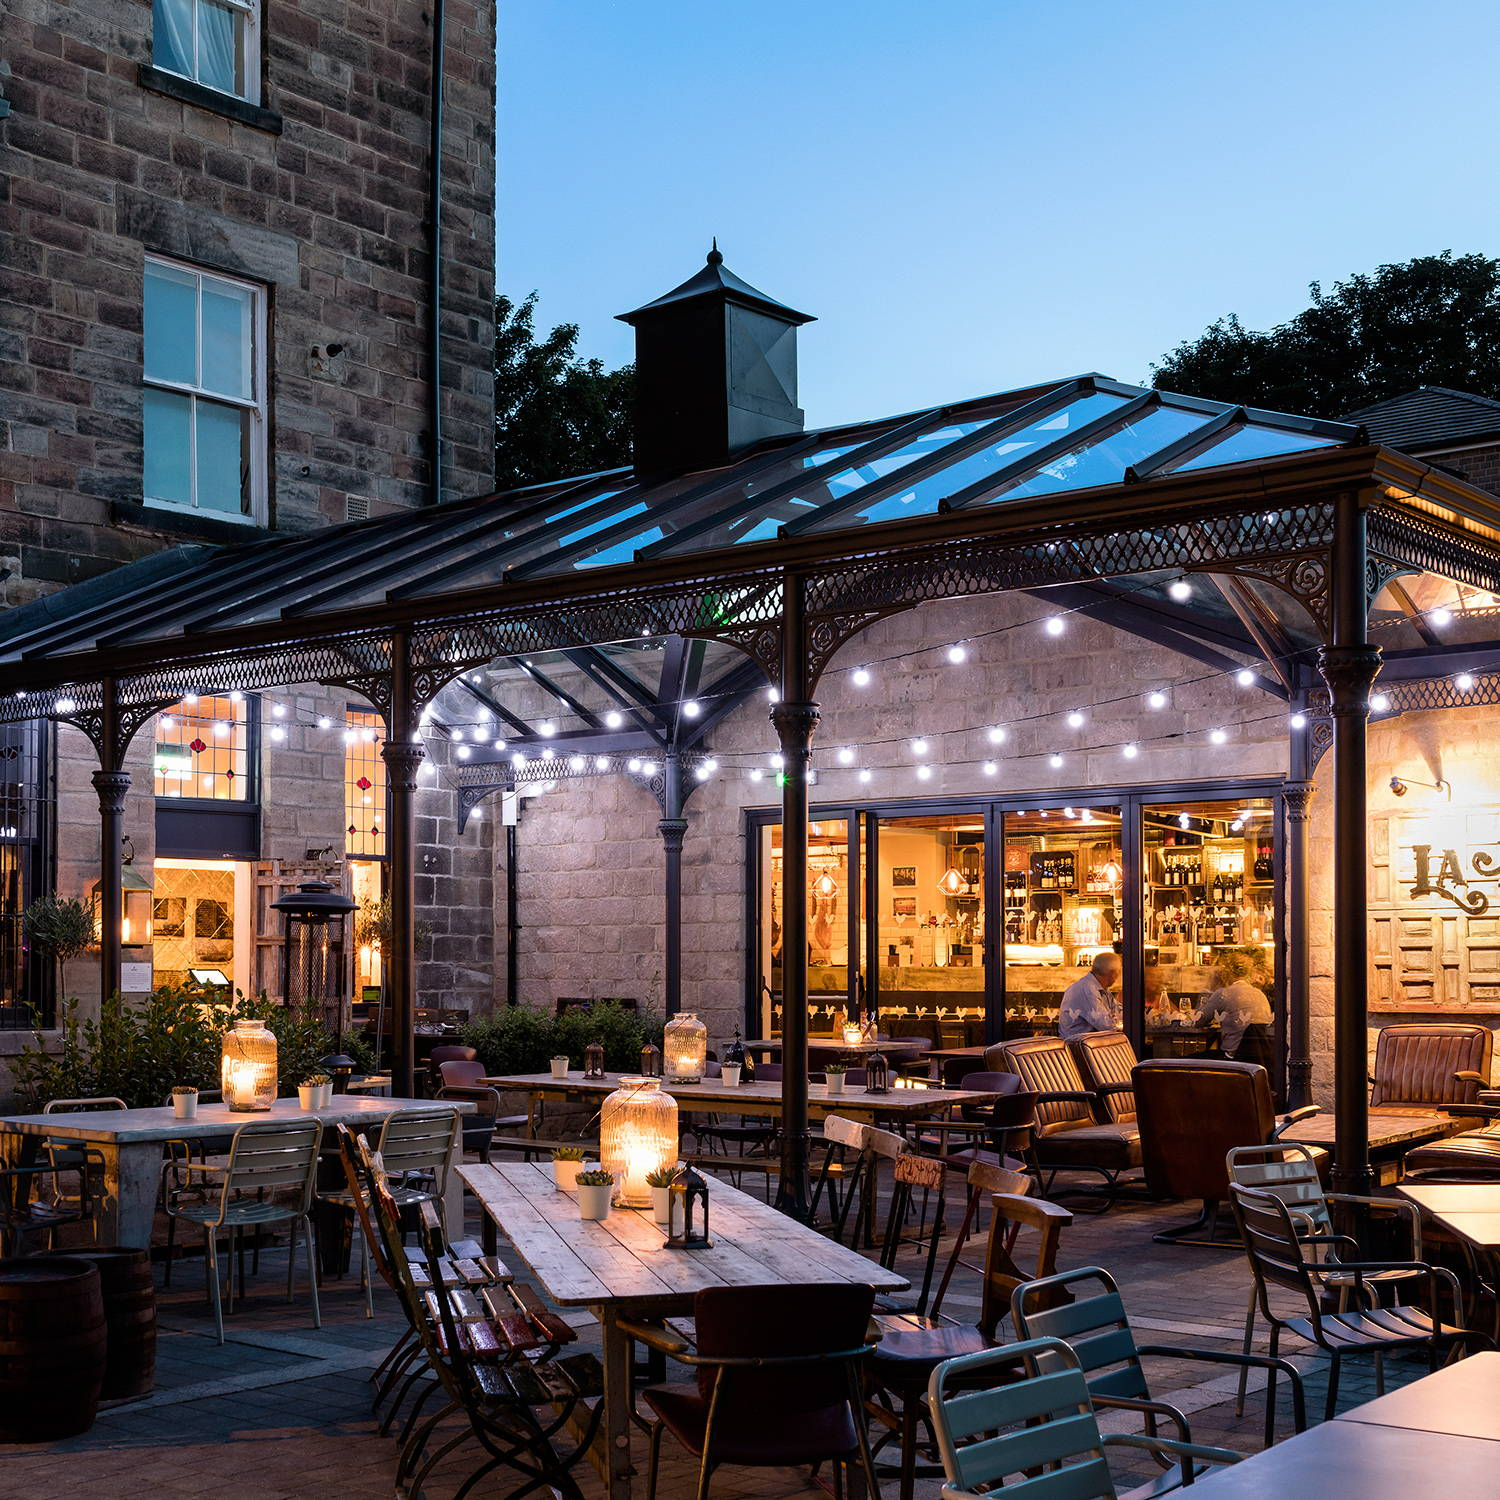 An outdoor restaurant space with tables and a conservatory dressed with festoon lights